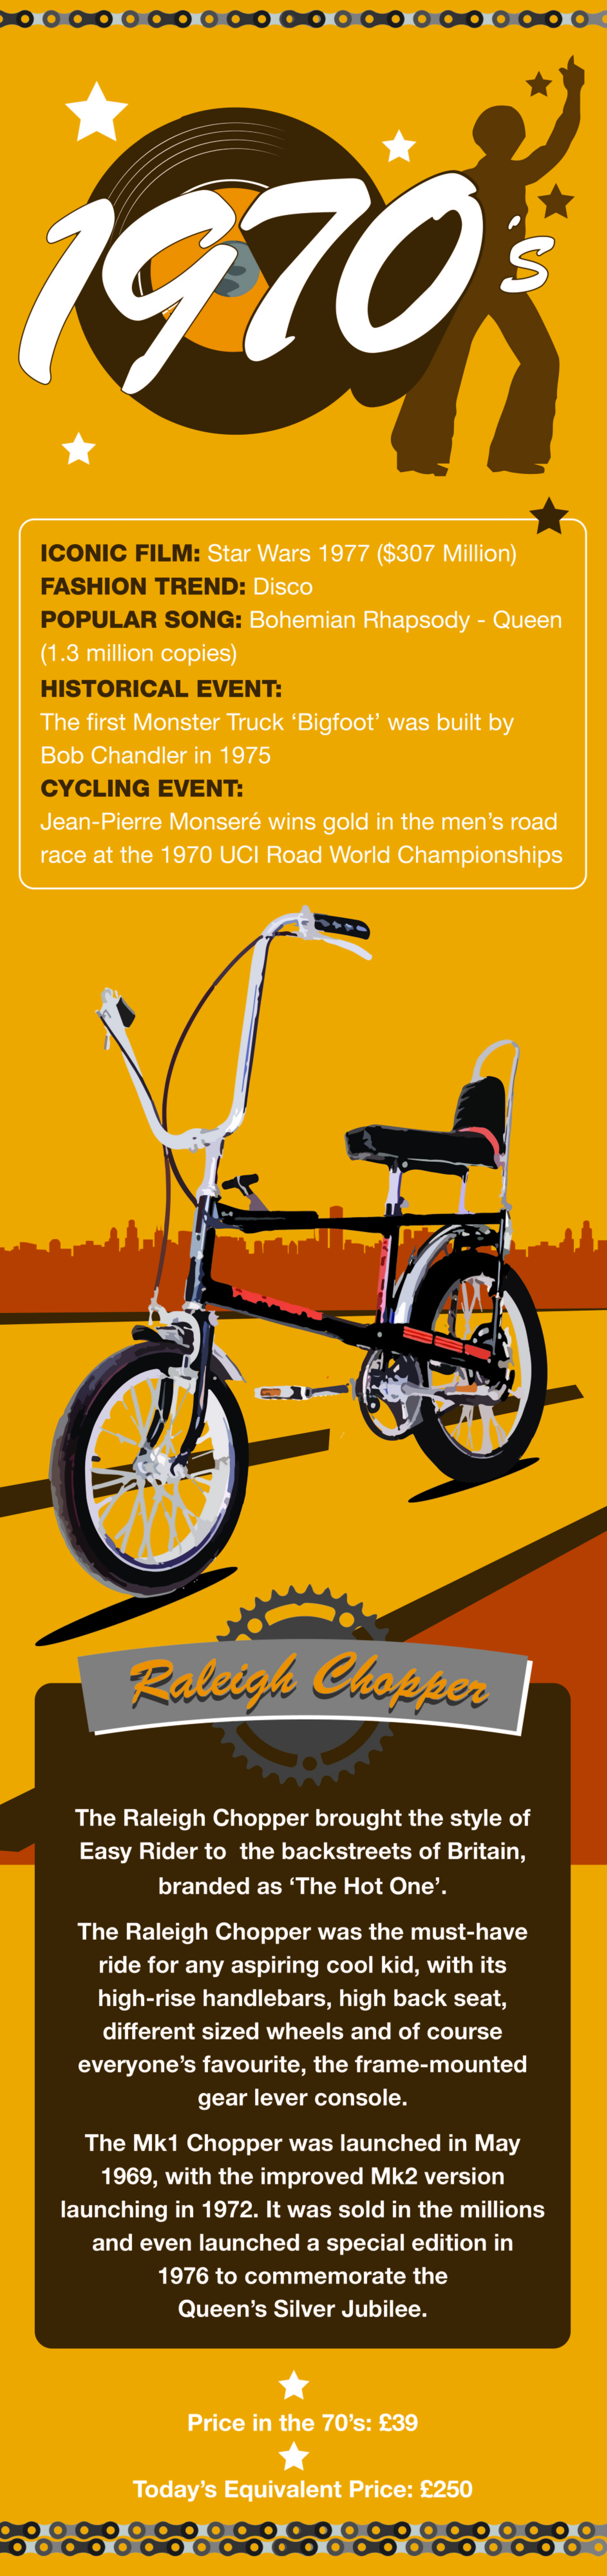 History of the Bicycle | Halfords Bike Timeline Infographic